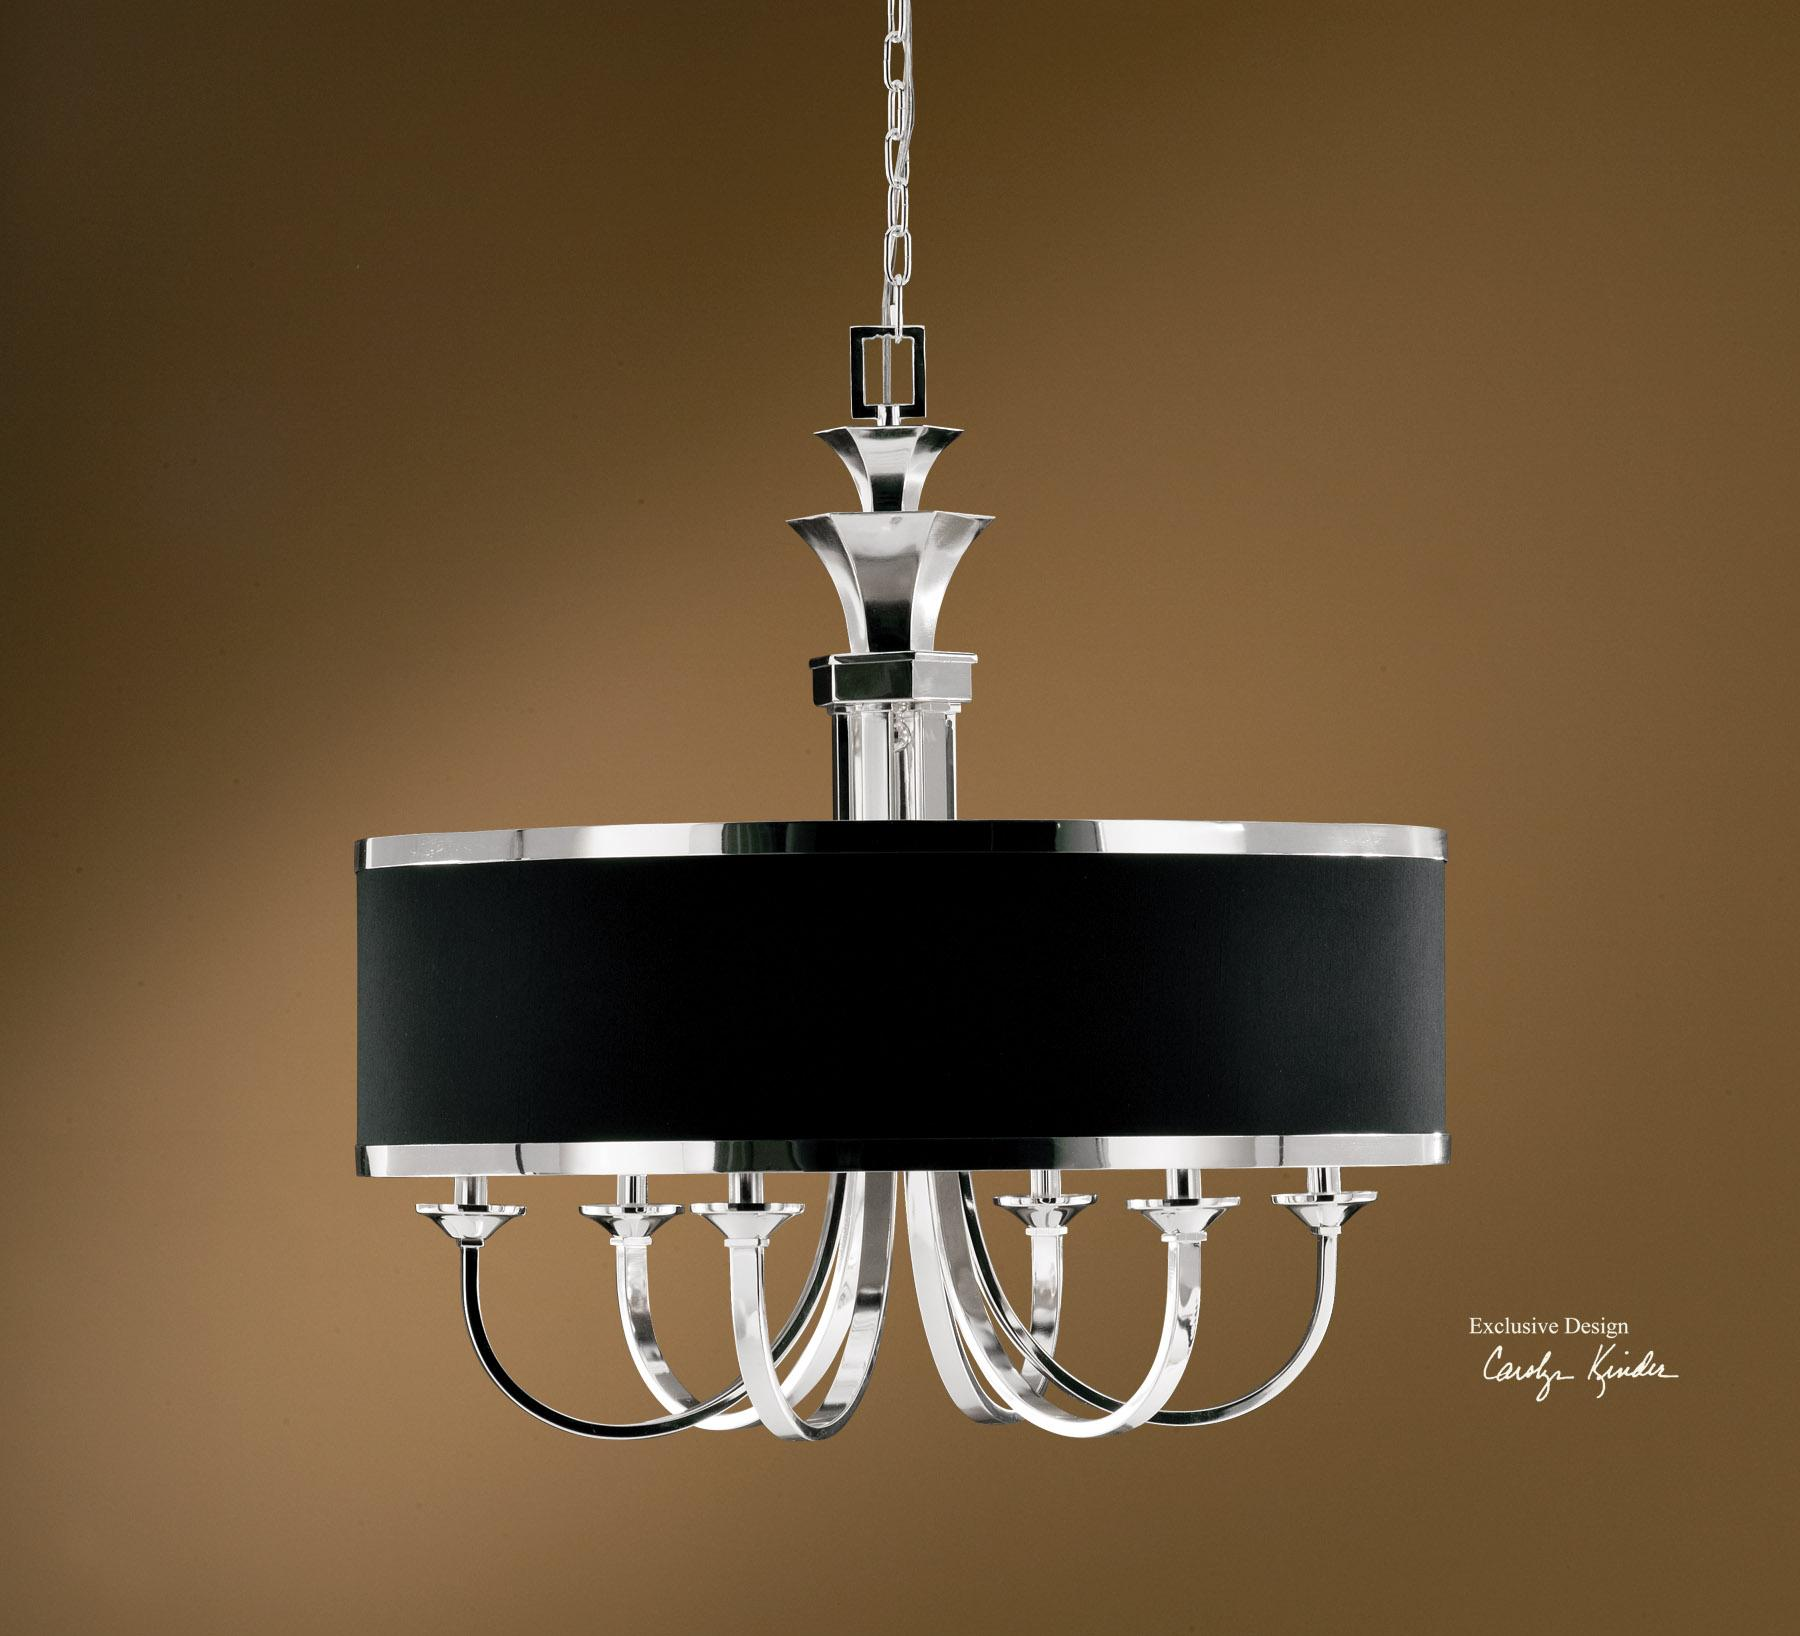 Uttermost Lighting Fixtures Tuxedo 6-Light Single Shade Chandelier - Item Number: 21130